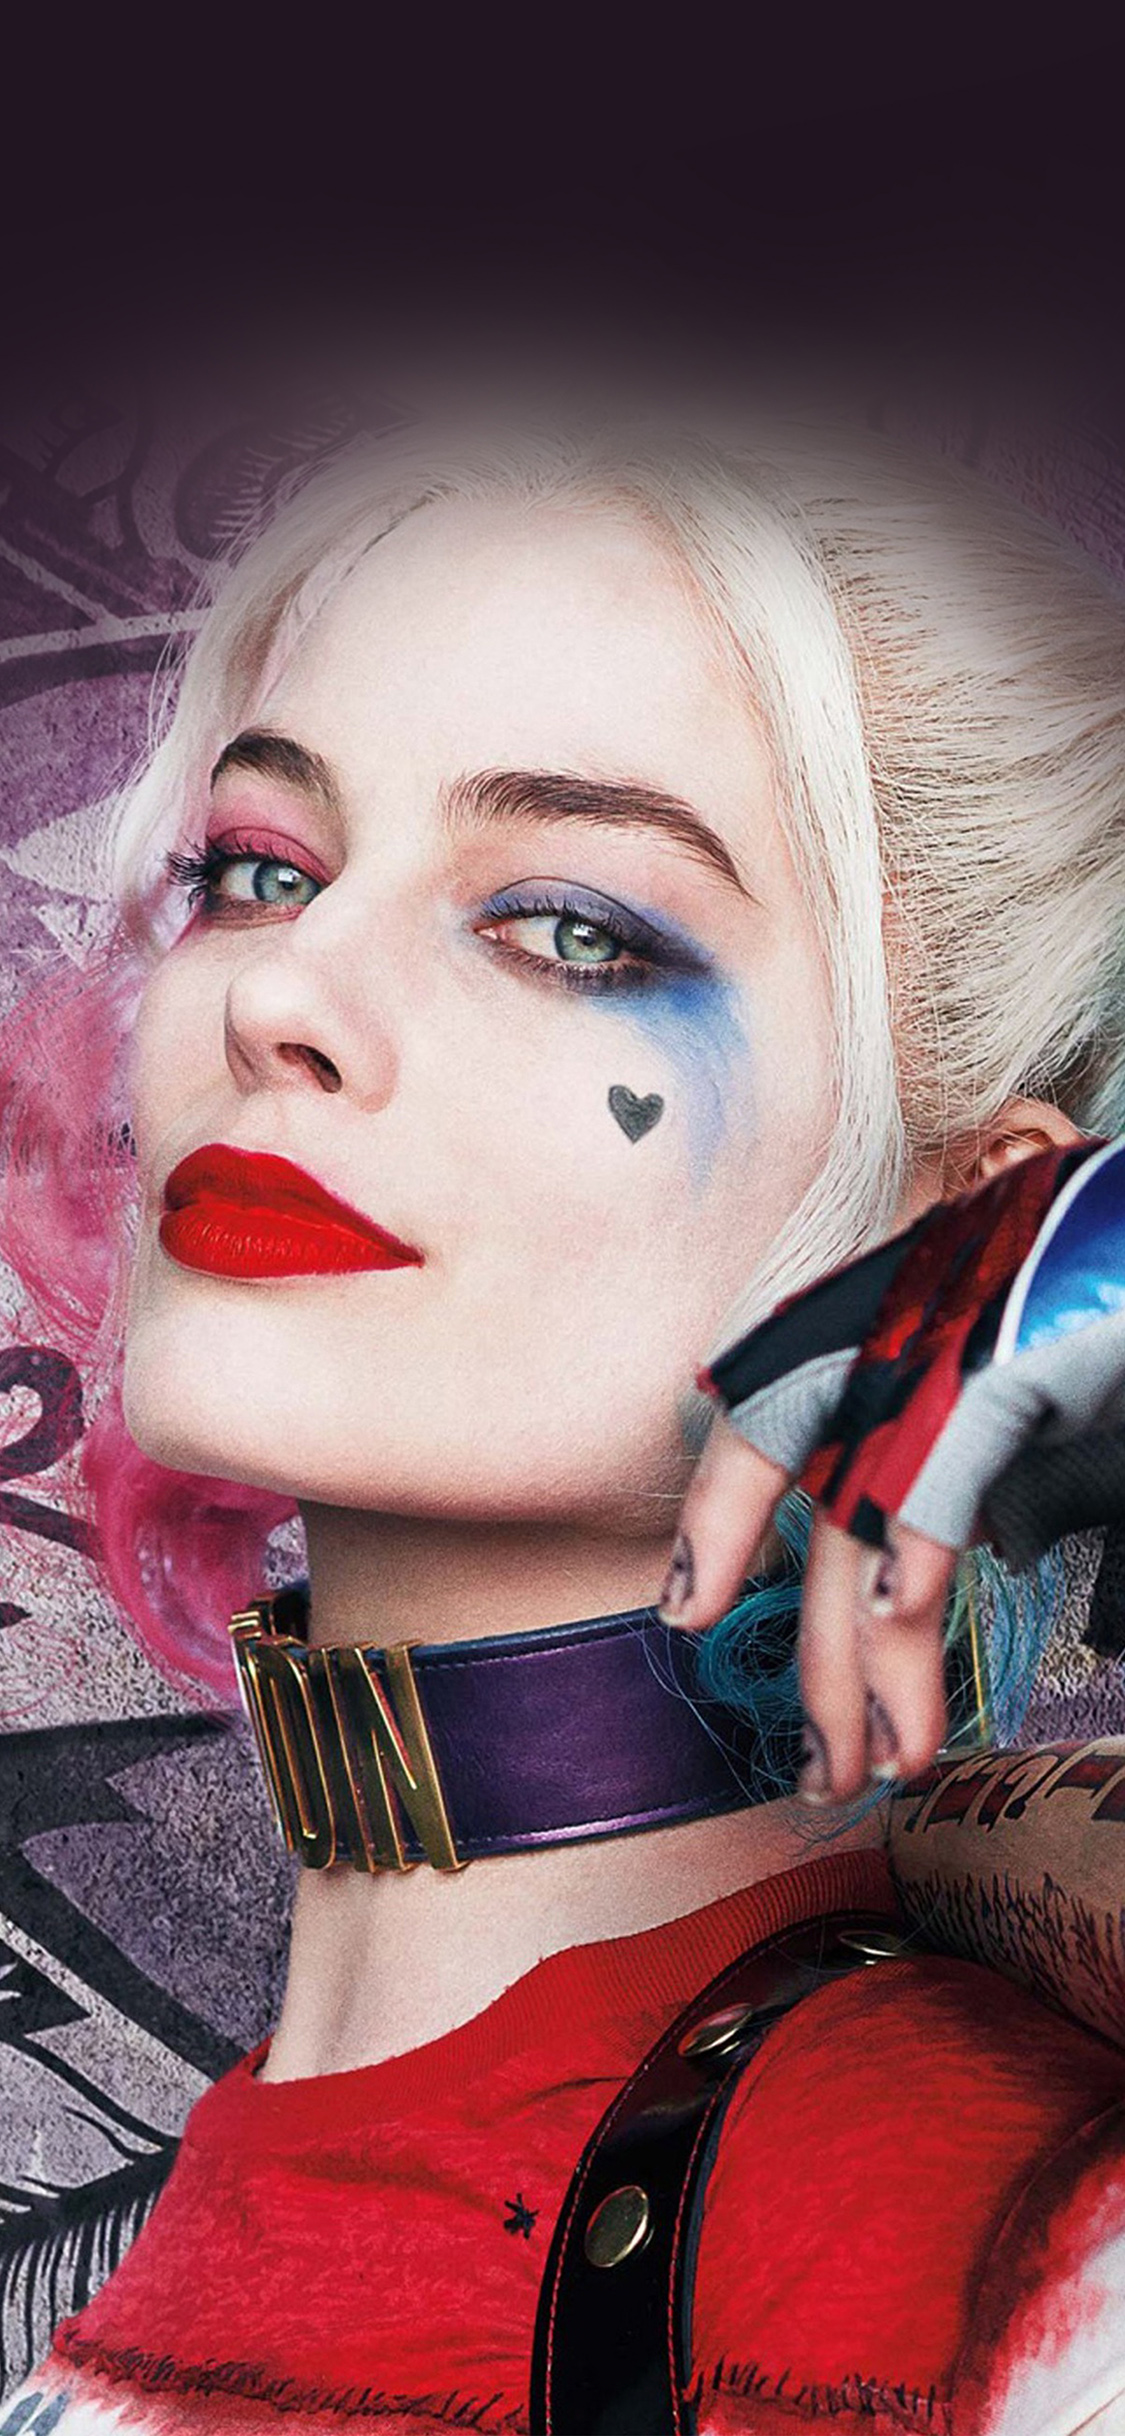 Sports Wallpapers Iphone 5 Hl21 Harley Quinn Hero Girl Joker Suicide Squad Wallpaper